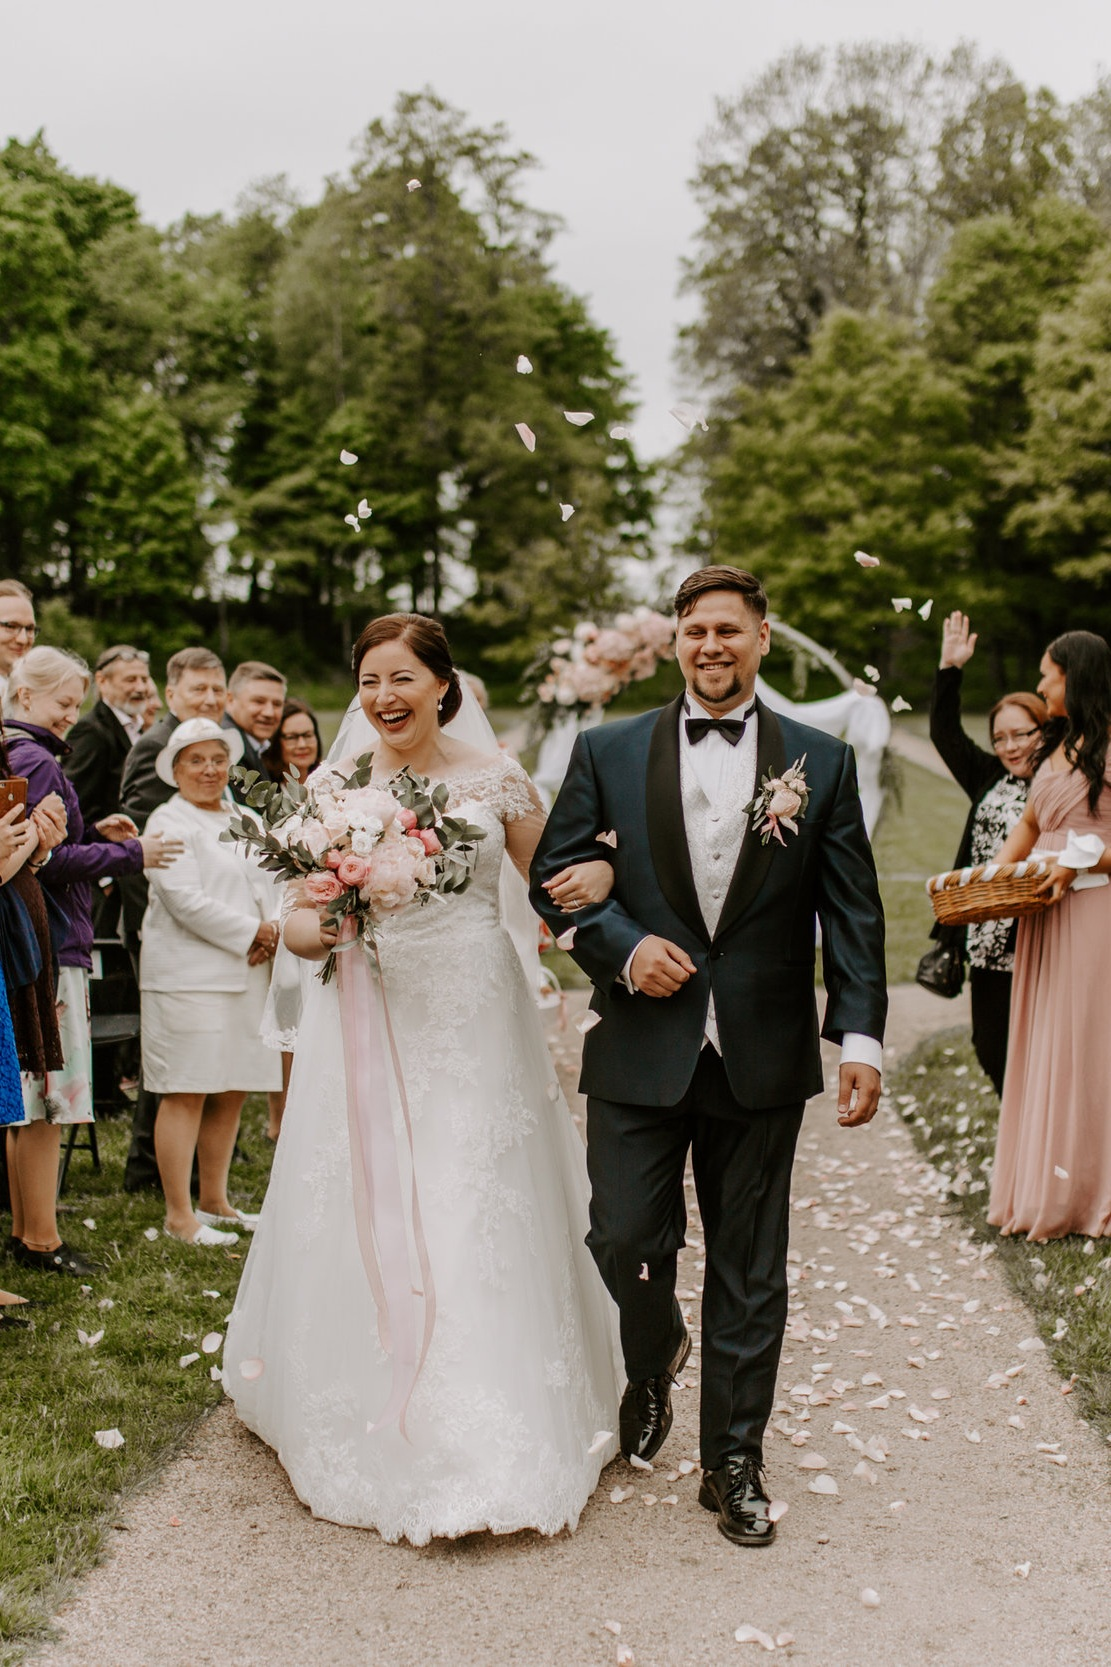 """Joonas & Samira - """"Thank you Viivi!Not only did you document the most important day of our life in a memorable and touching way, but you also put so much effort in getting to know us, planning everything ahead of time, and being on time - always. Not to forget the genuine interest for photographing and the kindness and warmth that surrounds you. You are very professional while being cheerful. We really appreciate you and your work. You soften even the hardest of rocks with your unique persona!Hugs from the happy couple!""""- Samira and Joonas"""